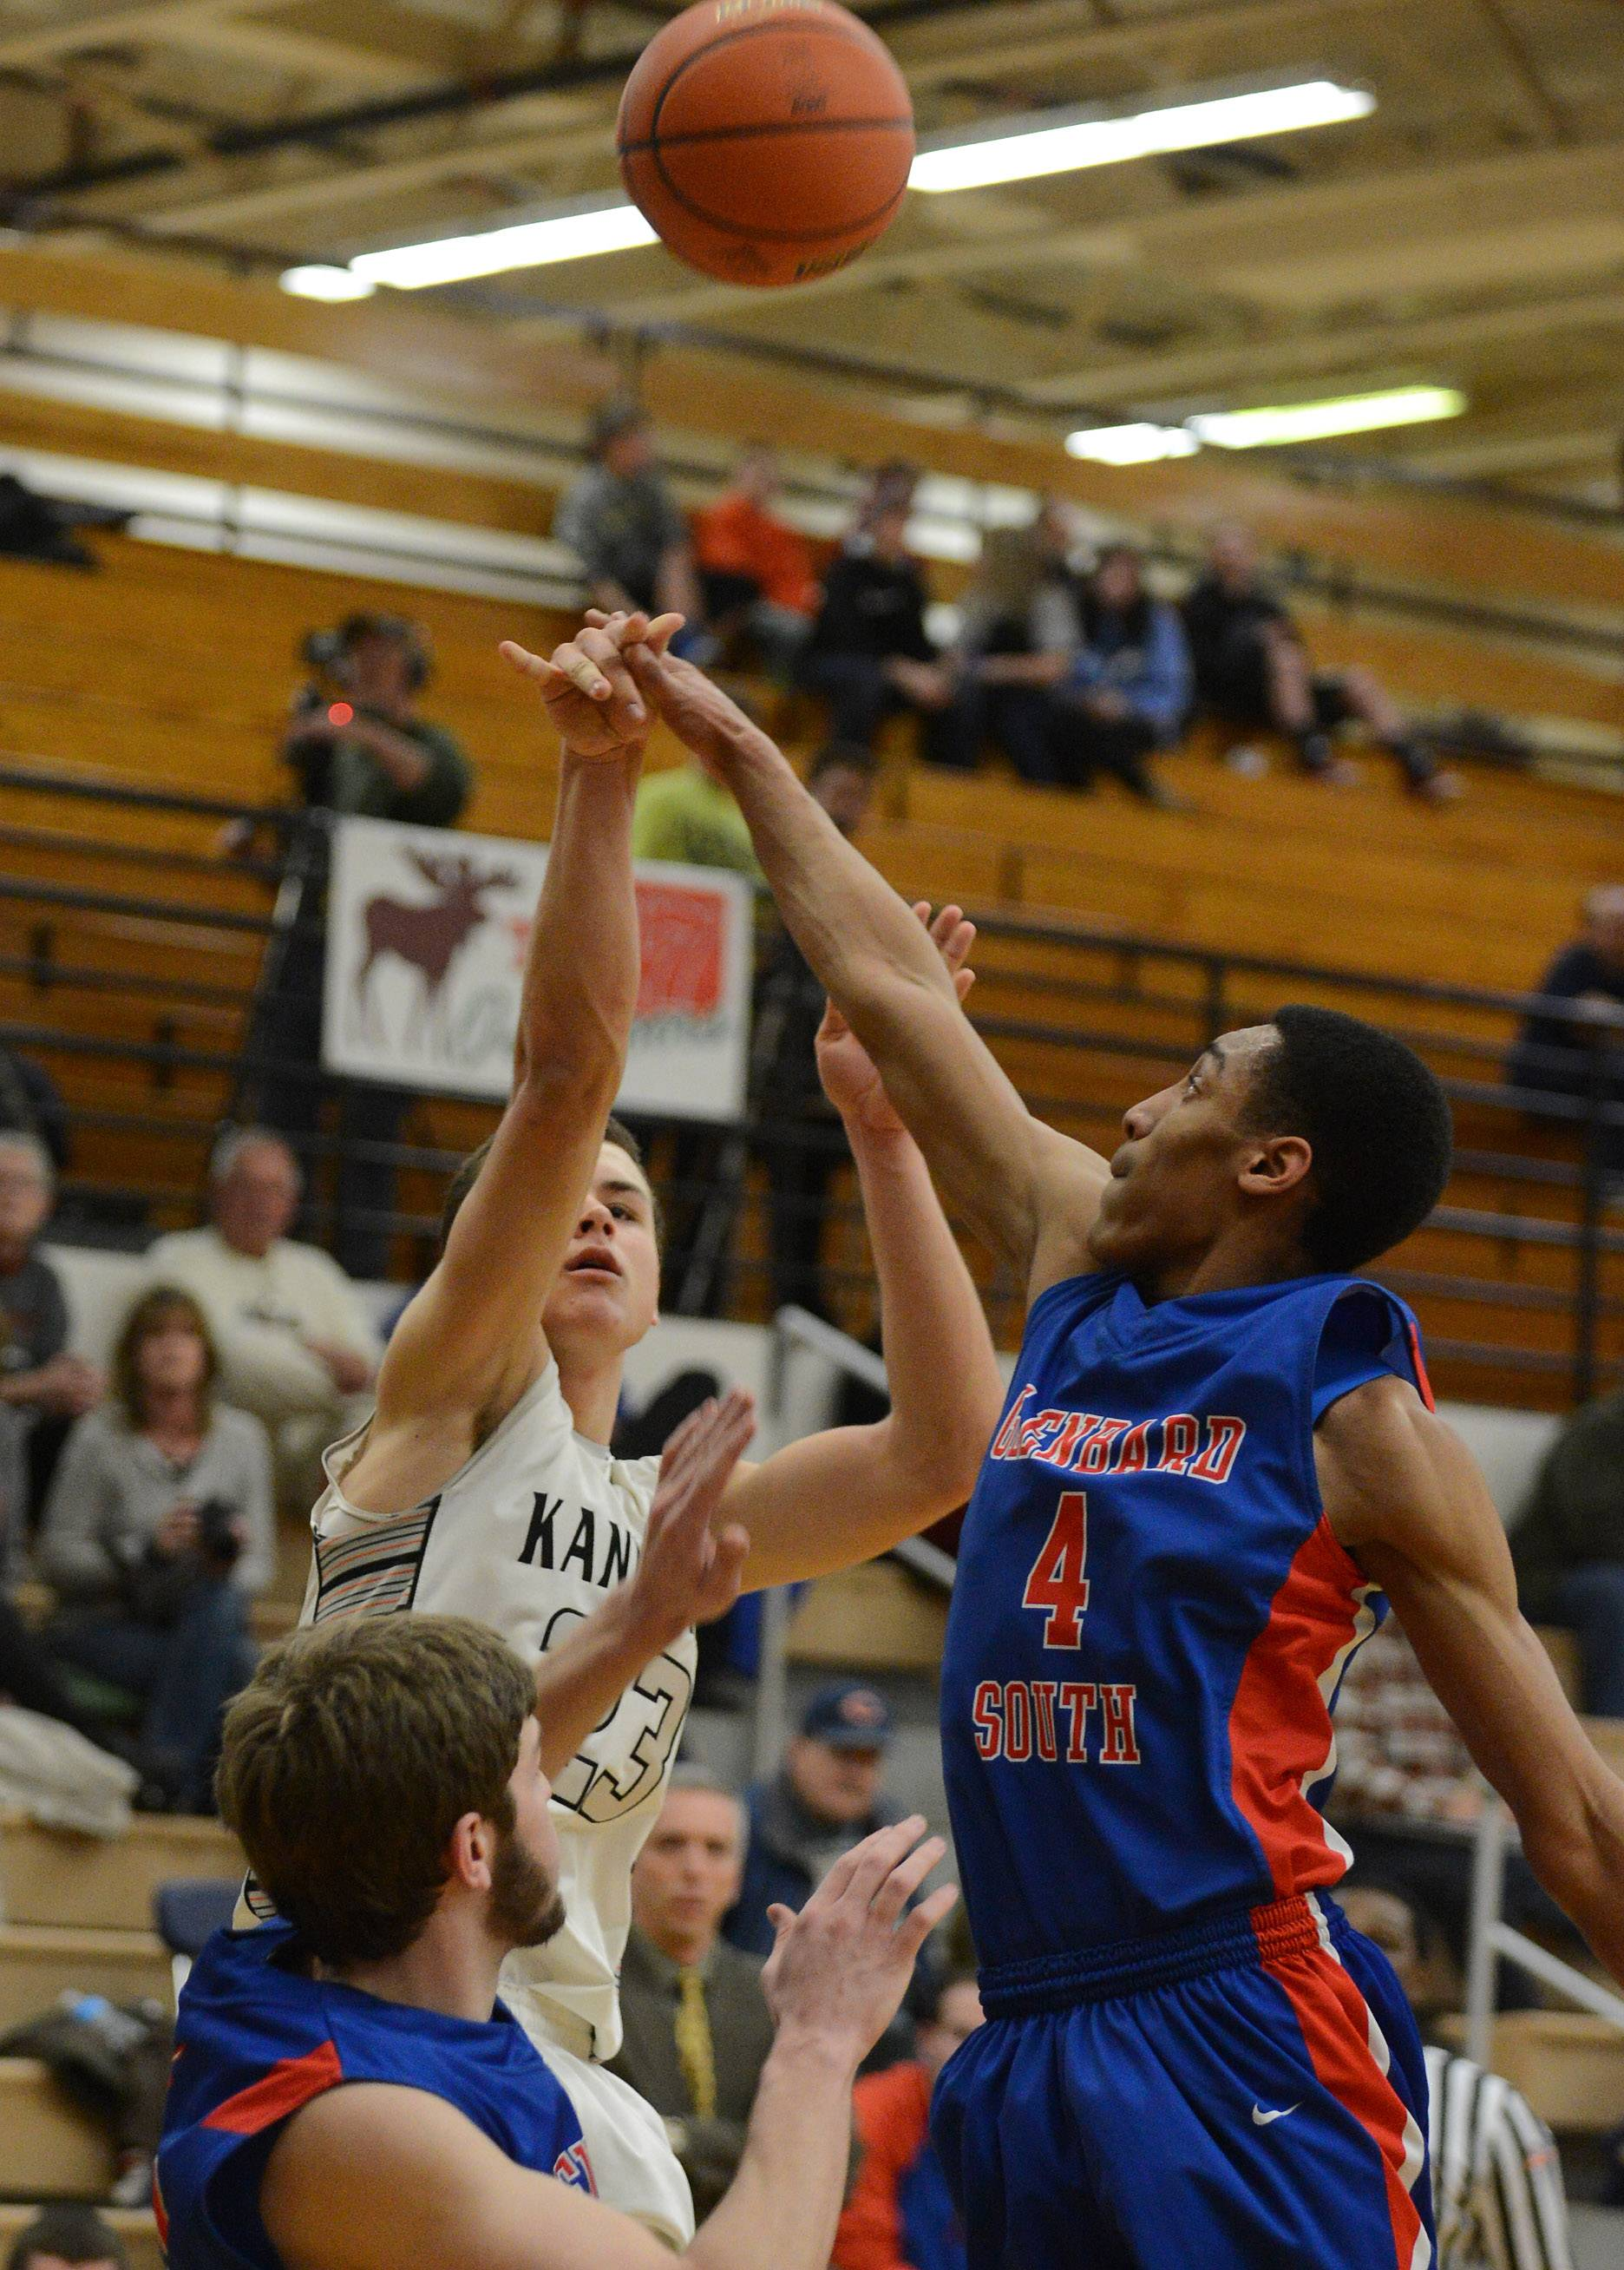 Images from the Kaneland vs. Glenbard South boys basketball regional game Tuesday, March 4, 2014.